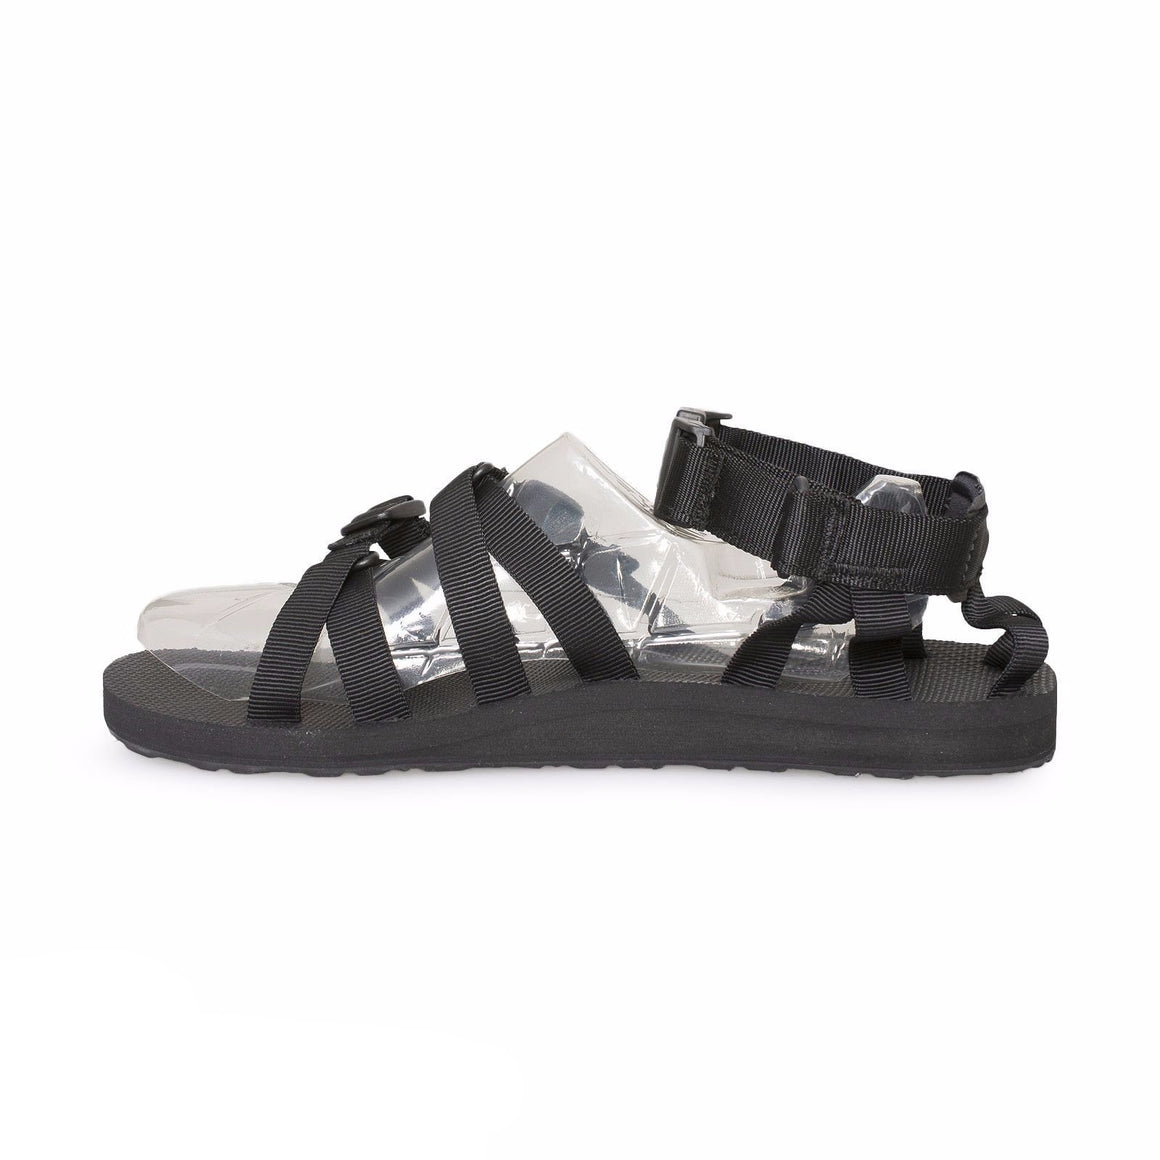 Teva Alp Black Sandals - Men's